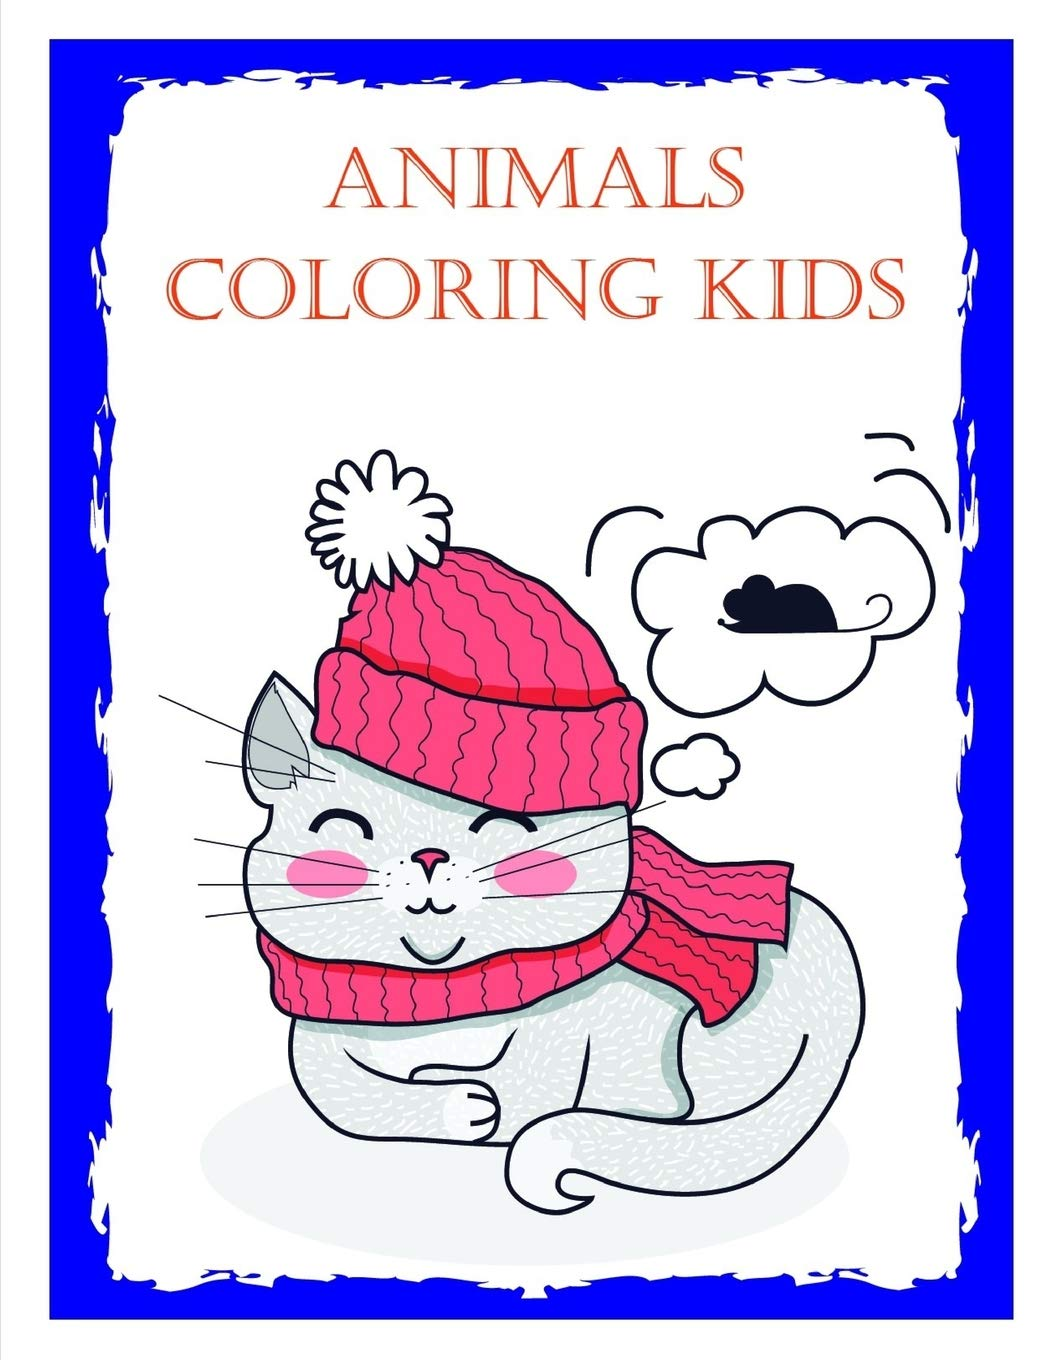 Buy Animals Coloring Kids Adorable Animal Designs Funny Coloring Pages For Kids Children 2 Desert Animals Book Online At Low Prices In India Animals Coloring Kids Adorable Animal Designs Funny Coloring